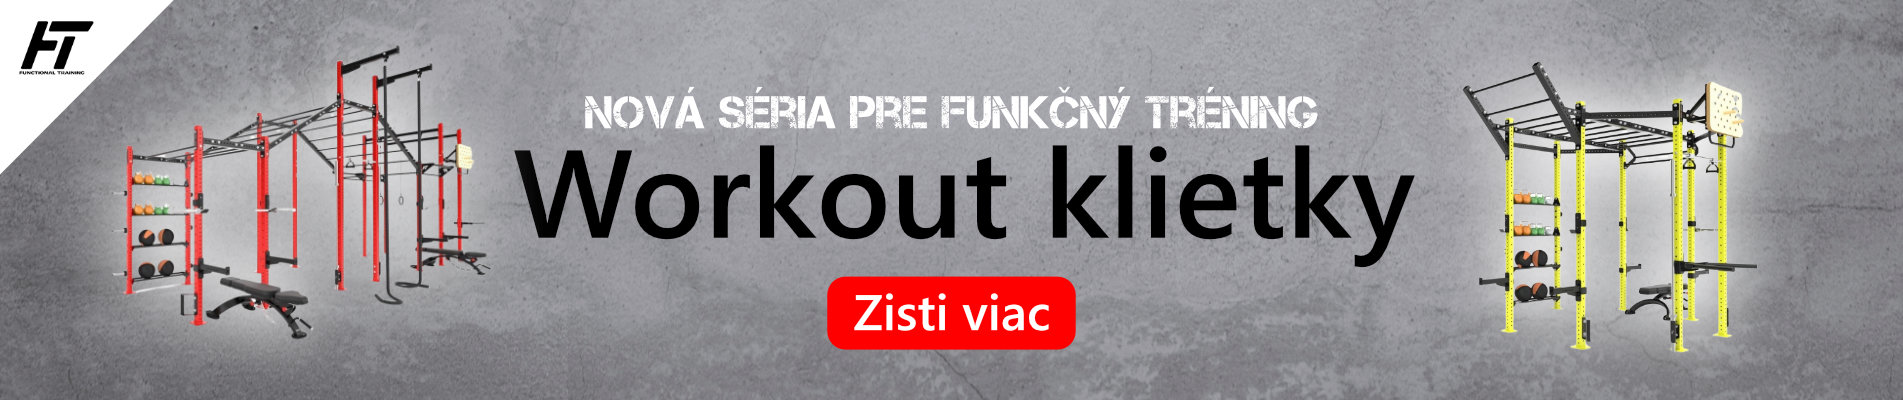 workout klietky